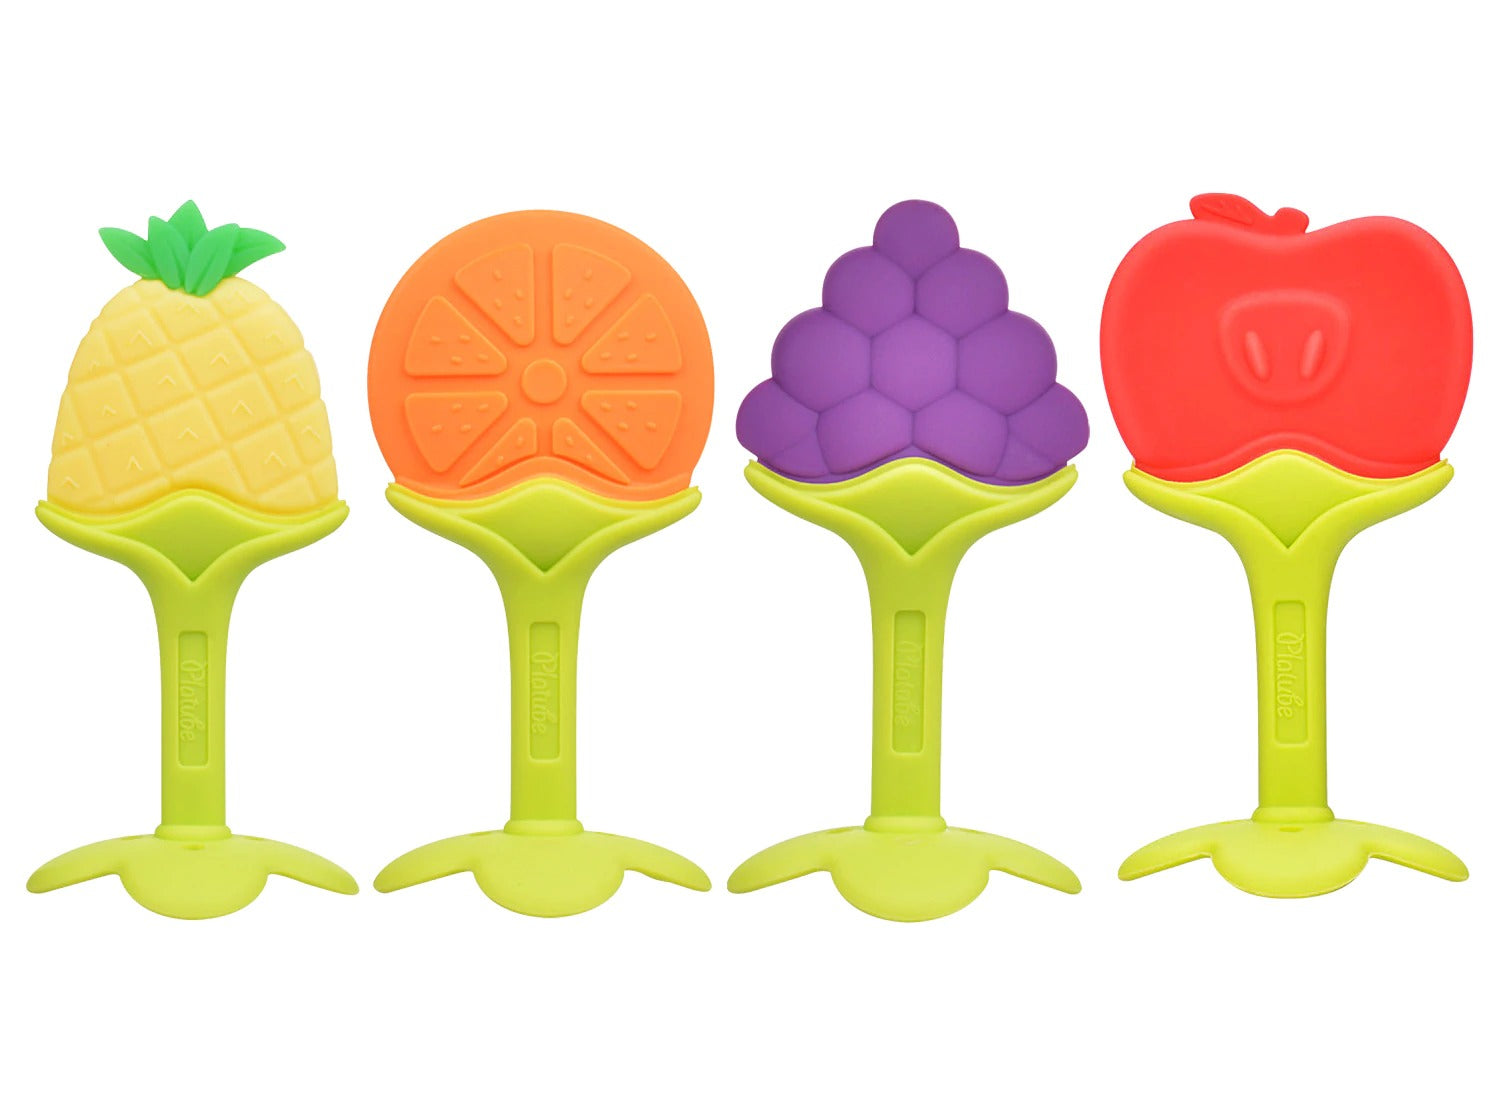 baby-teether-toys-toddle-safe-bpa-free-b_description-46